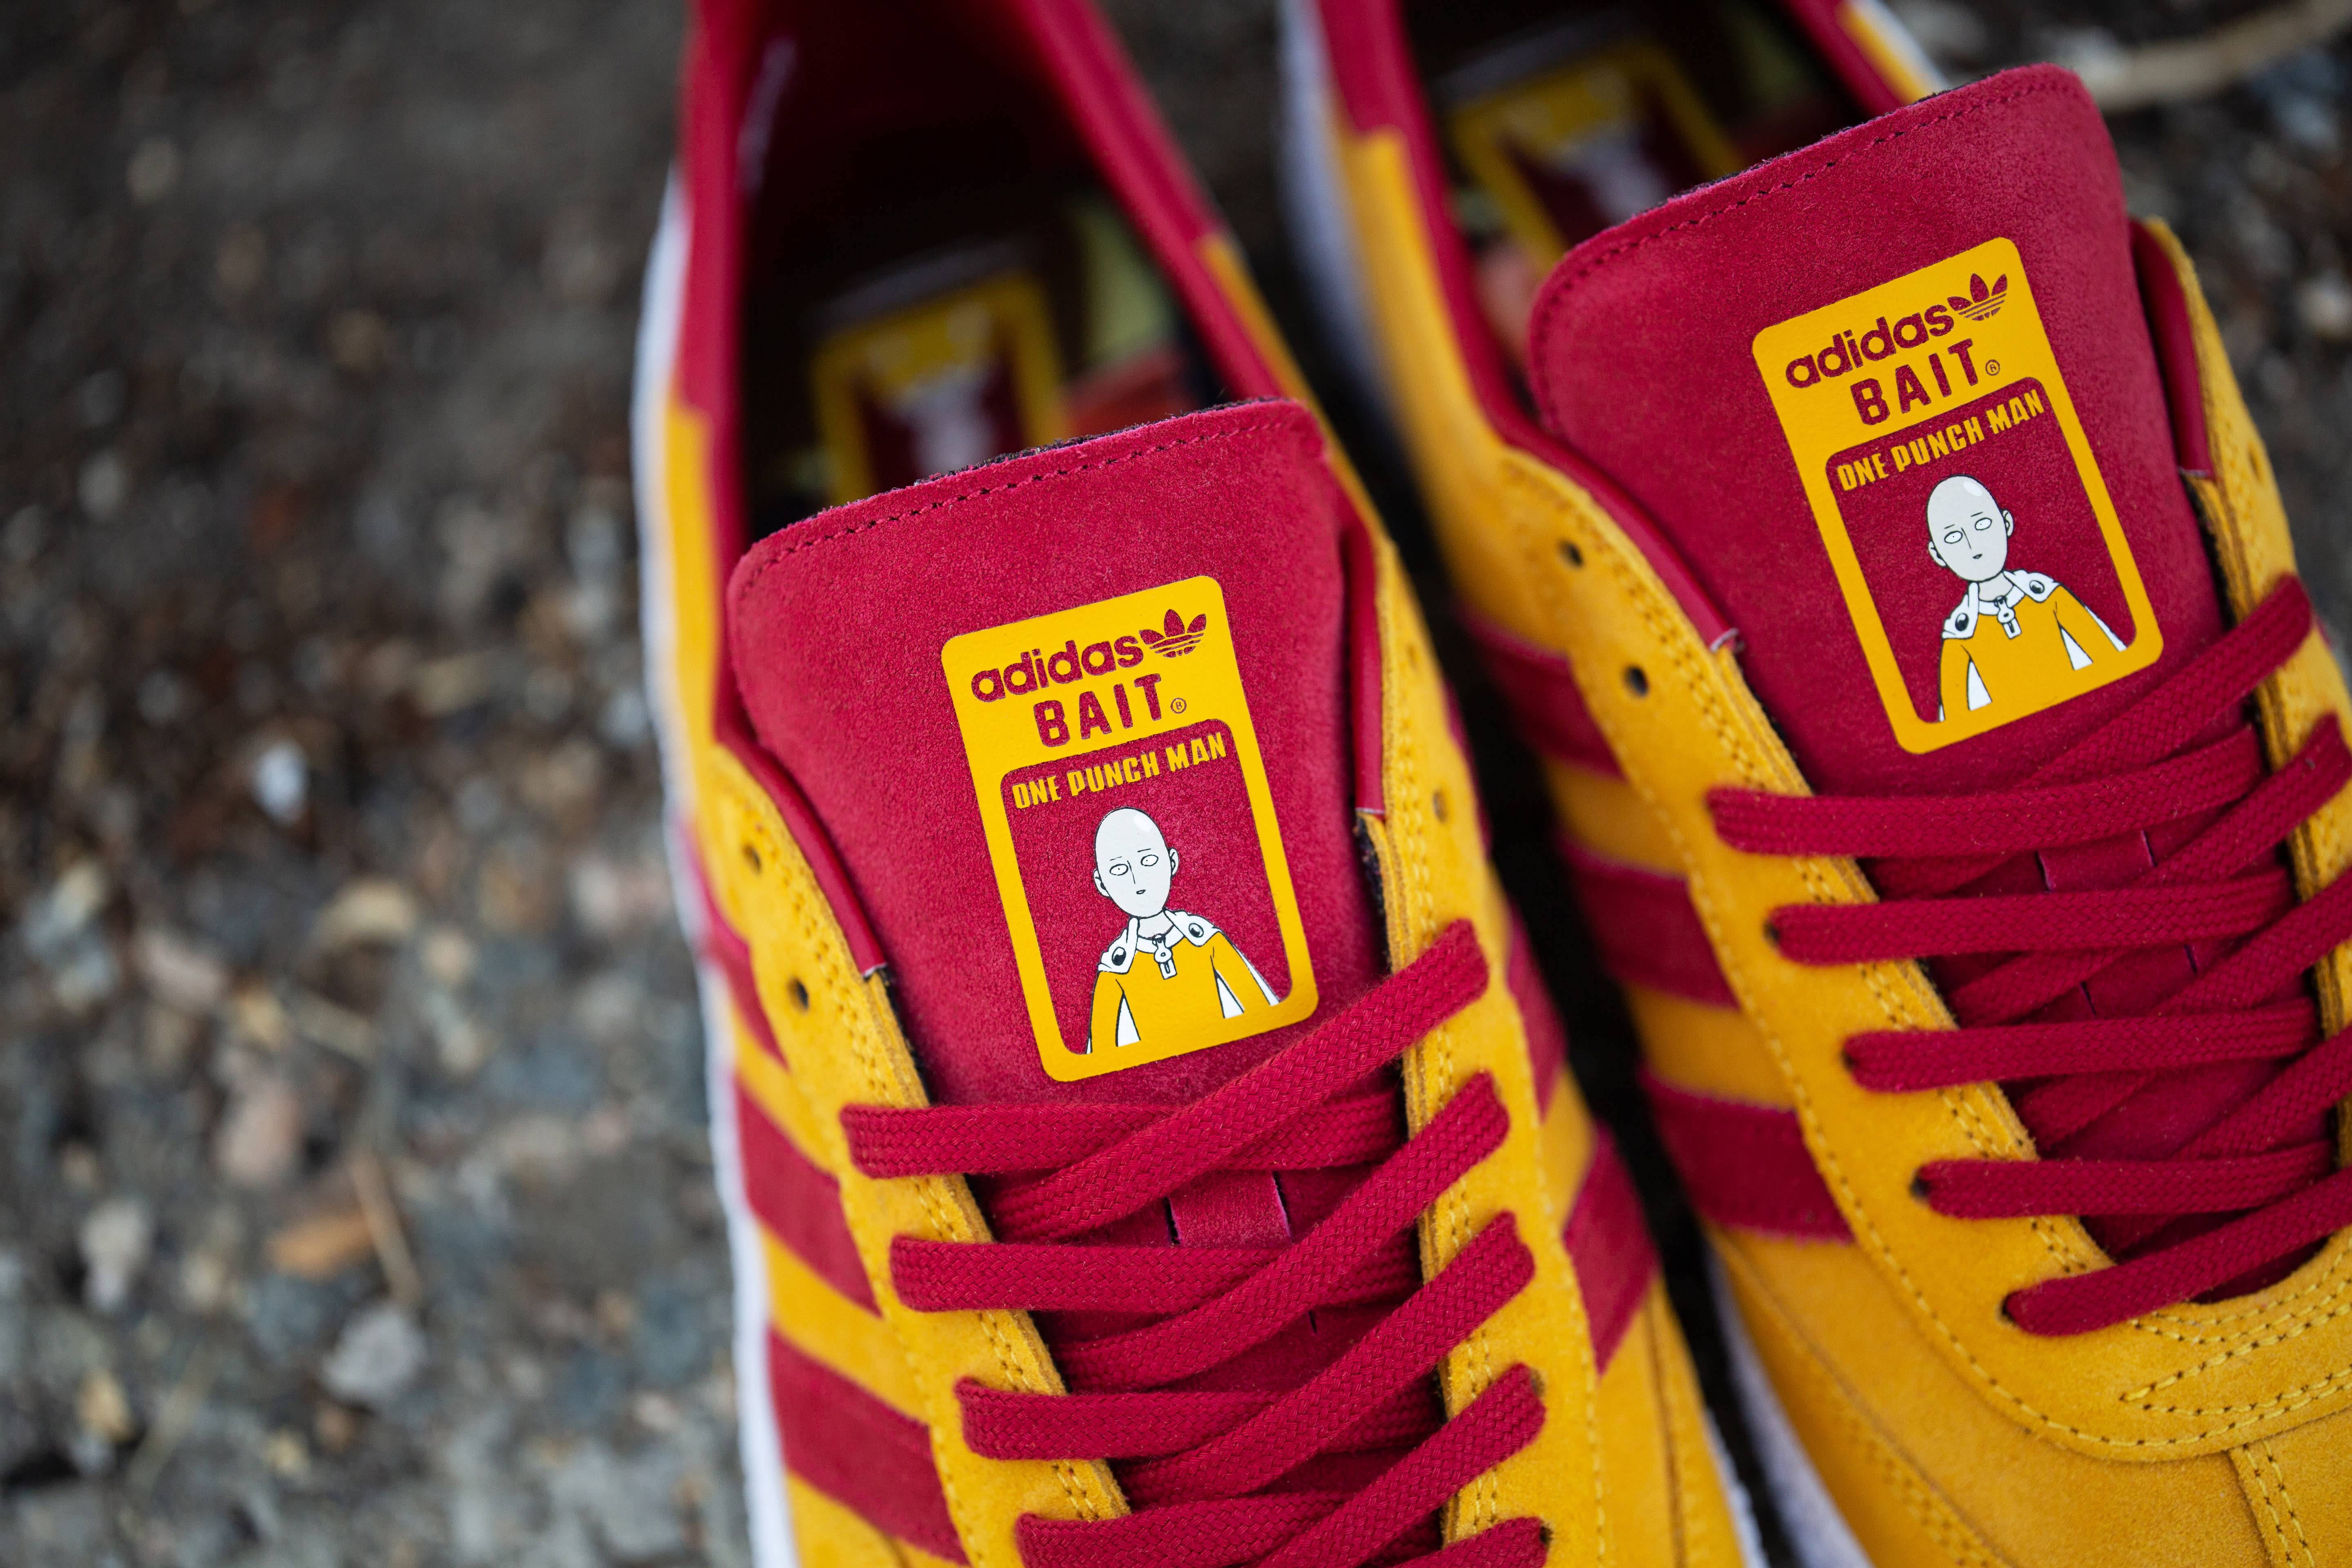 Bait x One Punch Man x Adidas Montreal Tongue